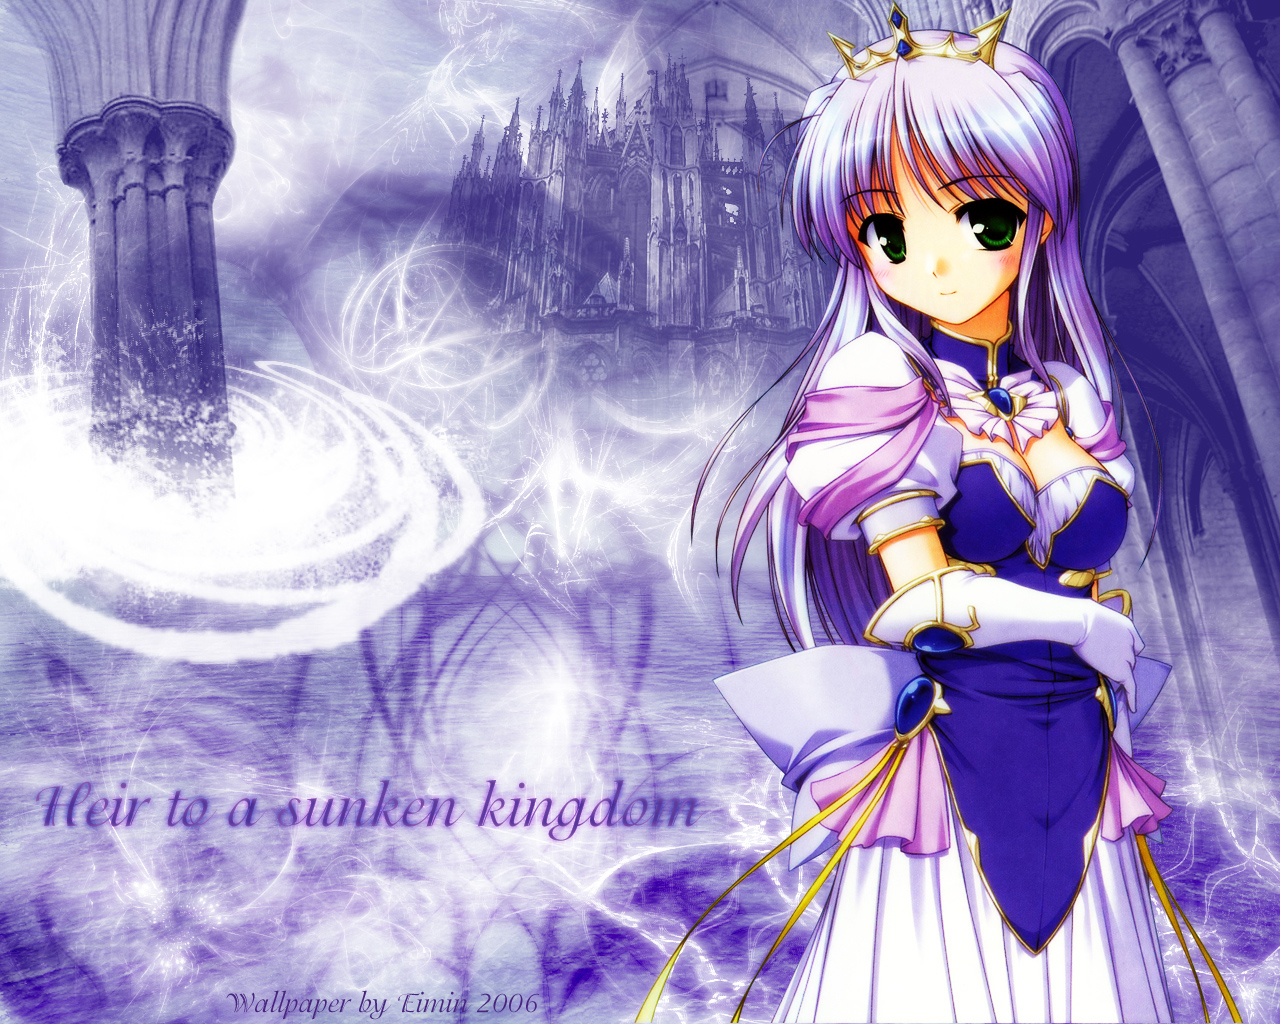 anime angel wallpaper, anime wallpaper widescreen, emo anime wallpaper, anime guy wallpapers, dark anime wallpaper